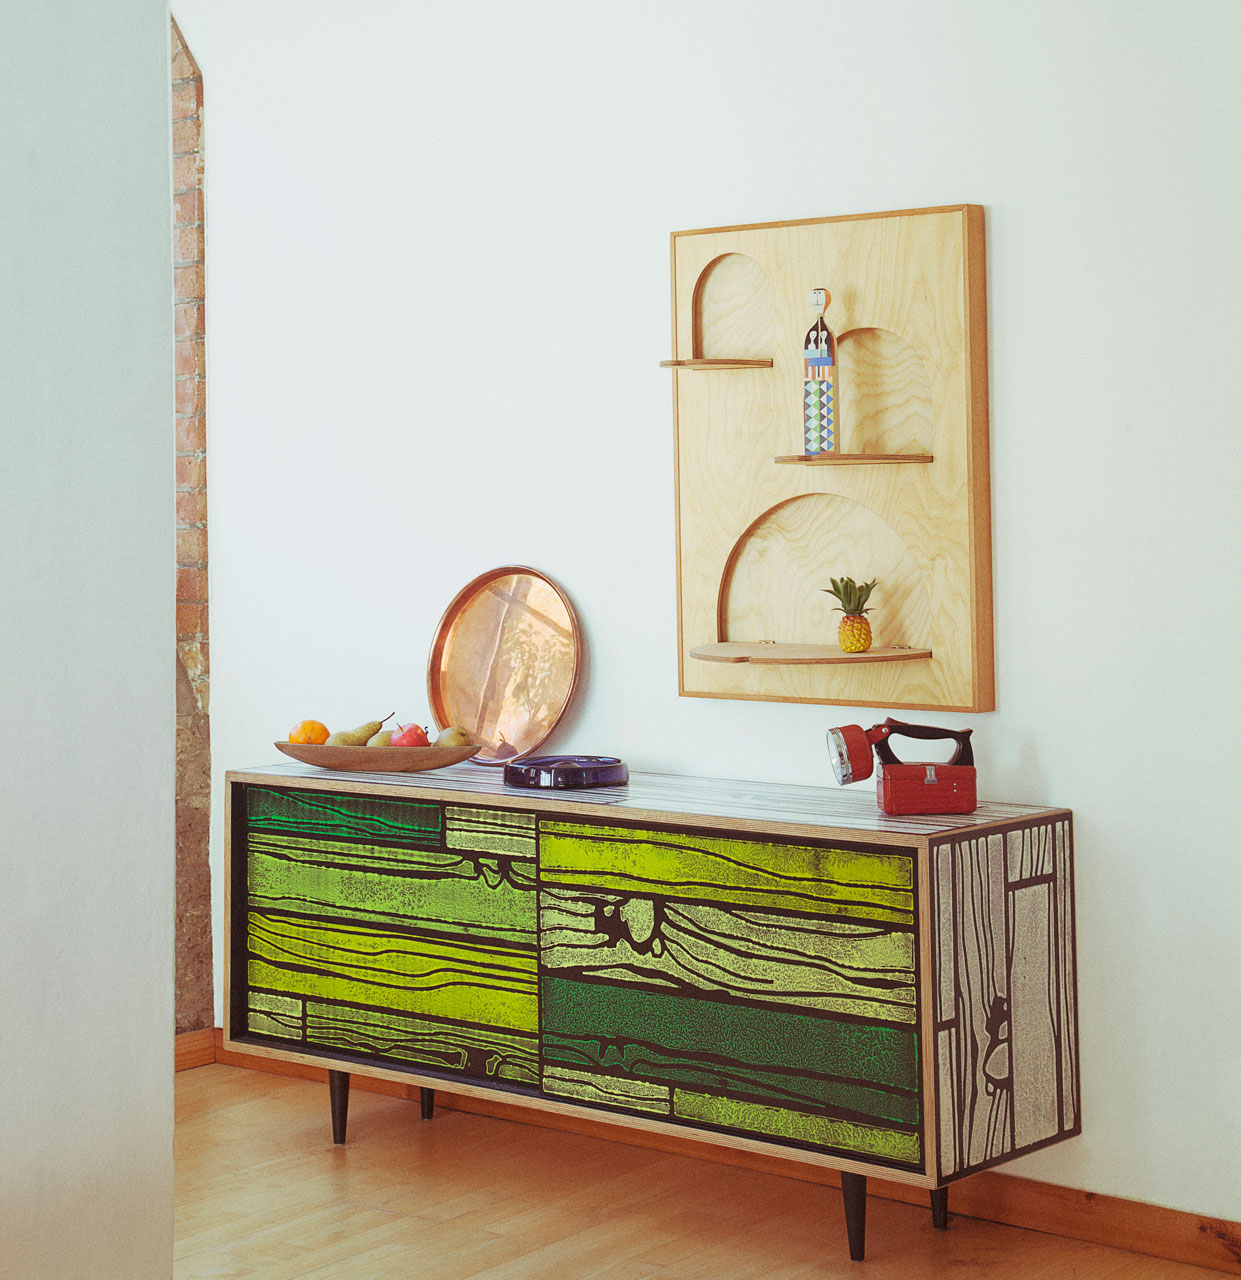 Wallmonds Shelves By Gonçalo Campos ...